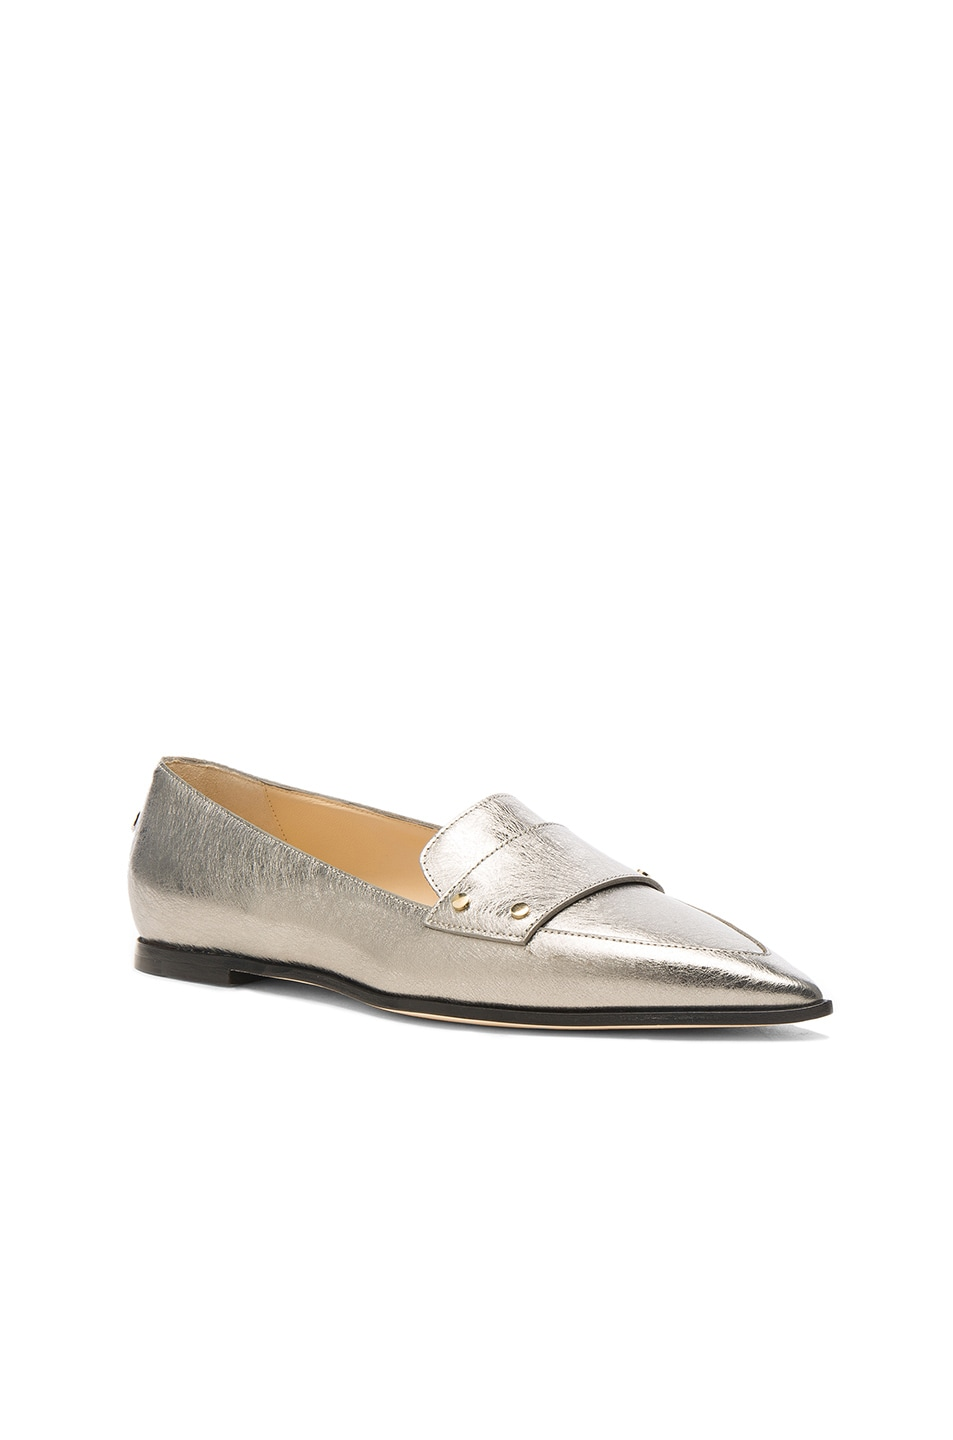 Image 2 of Jimmy Choo Leather Gia Flats in Vintage Silver